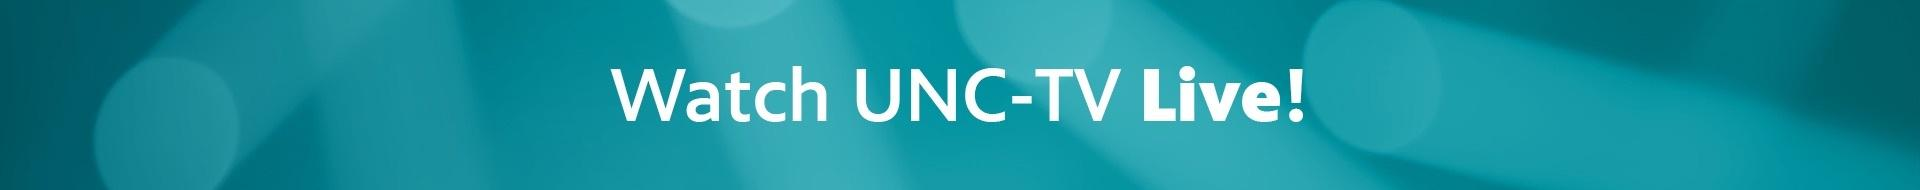 """Image text reads """"Watch UNC-TV Live"""" in white font on teal background"""